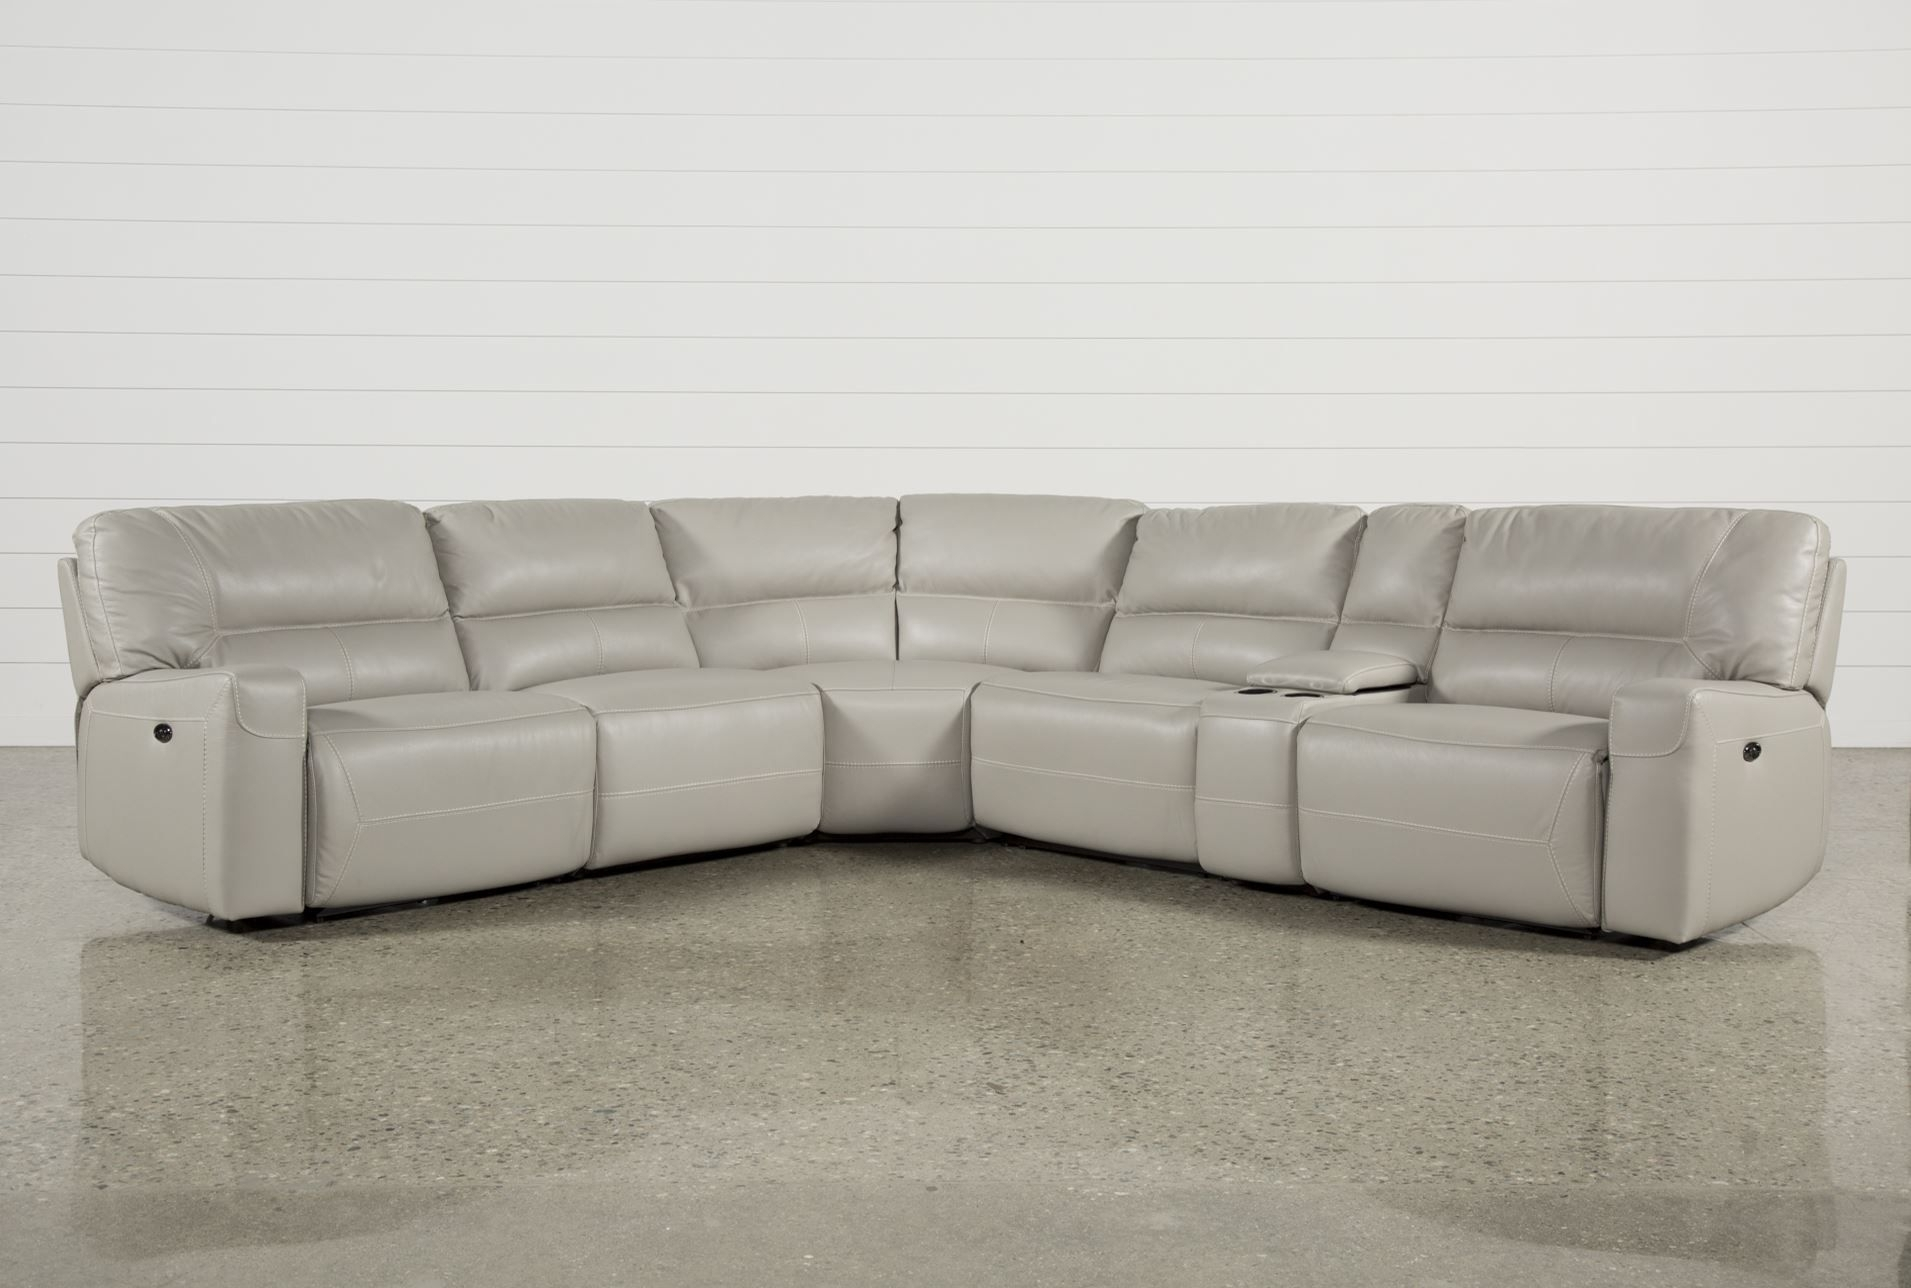 6 Piece Power Reclining Sectional, Renaldo, Grey, Sofas | Reclining In Waylon 3 Piece Power Reclining Sectionals (Image 3 of 25)